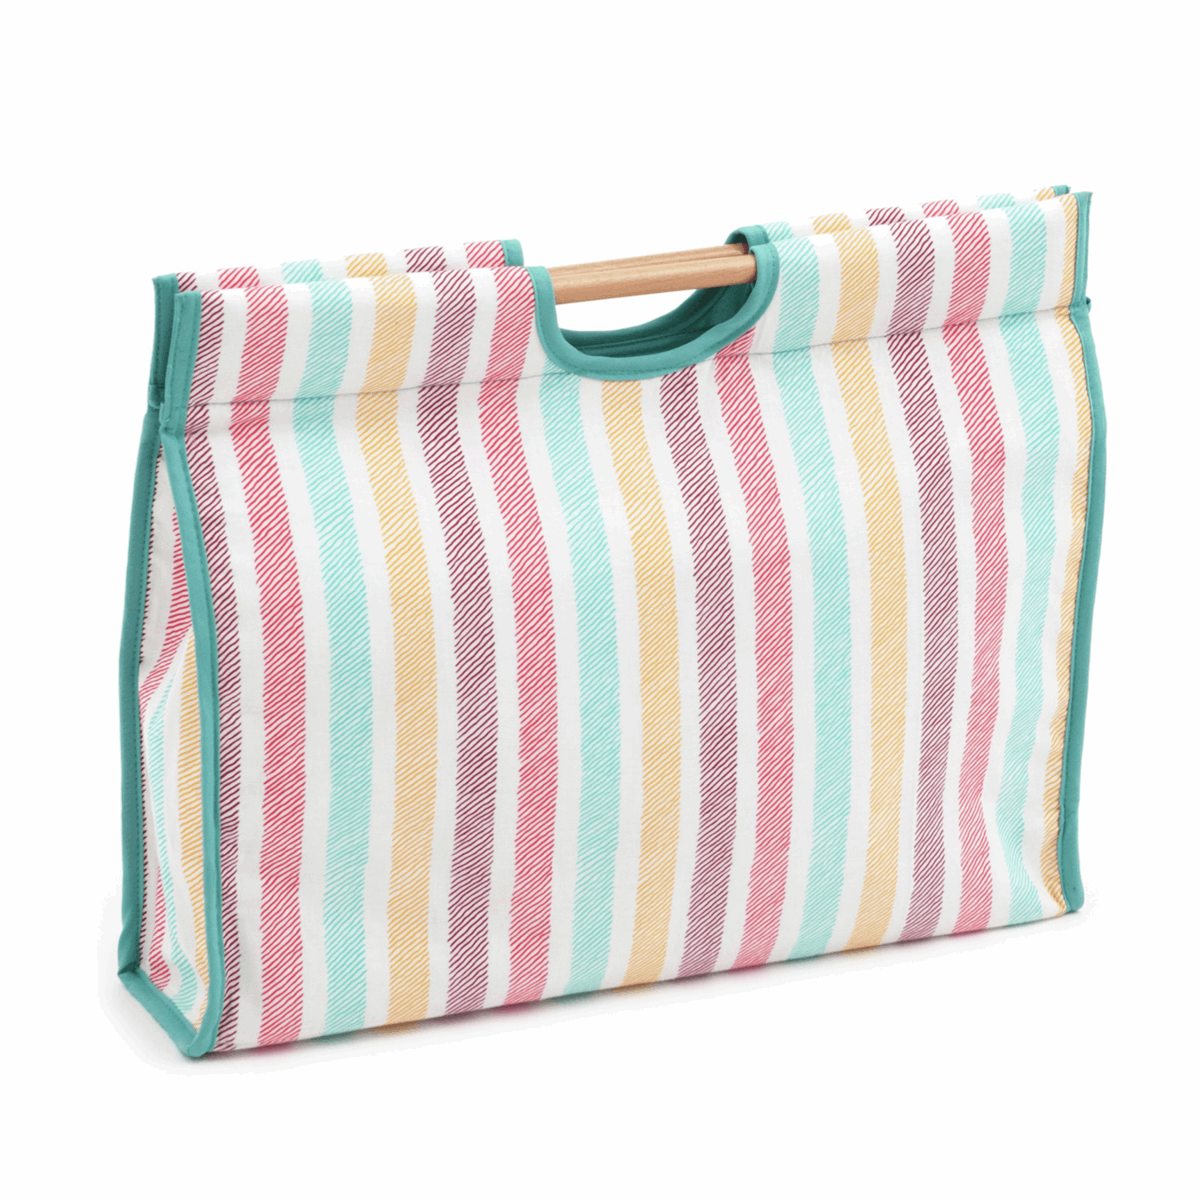 Picture of S&W Collection: Craft Bag with Wooden Handles: Sketch Stripe